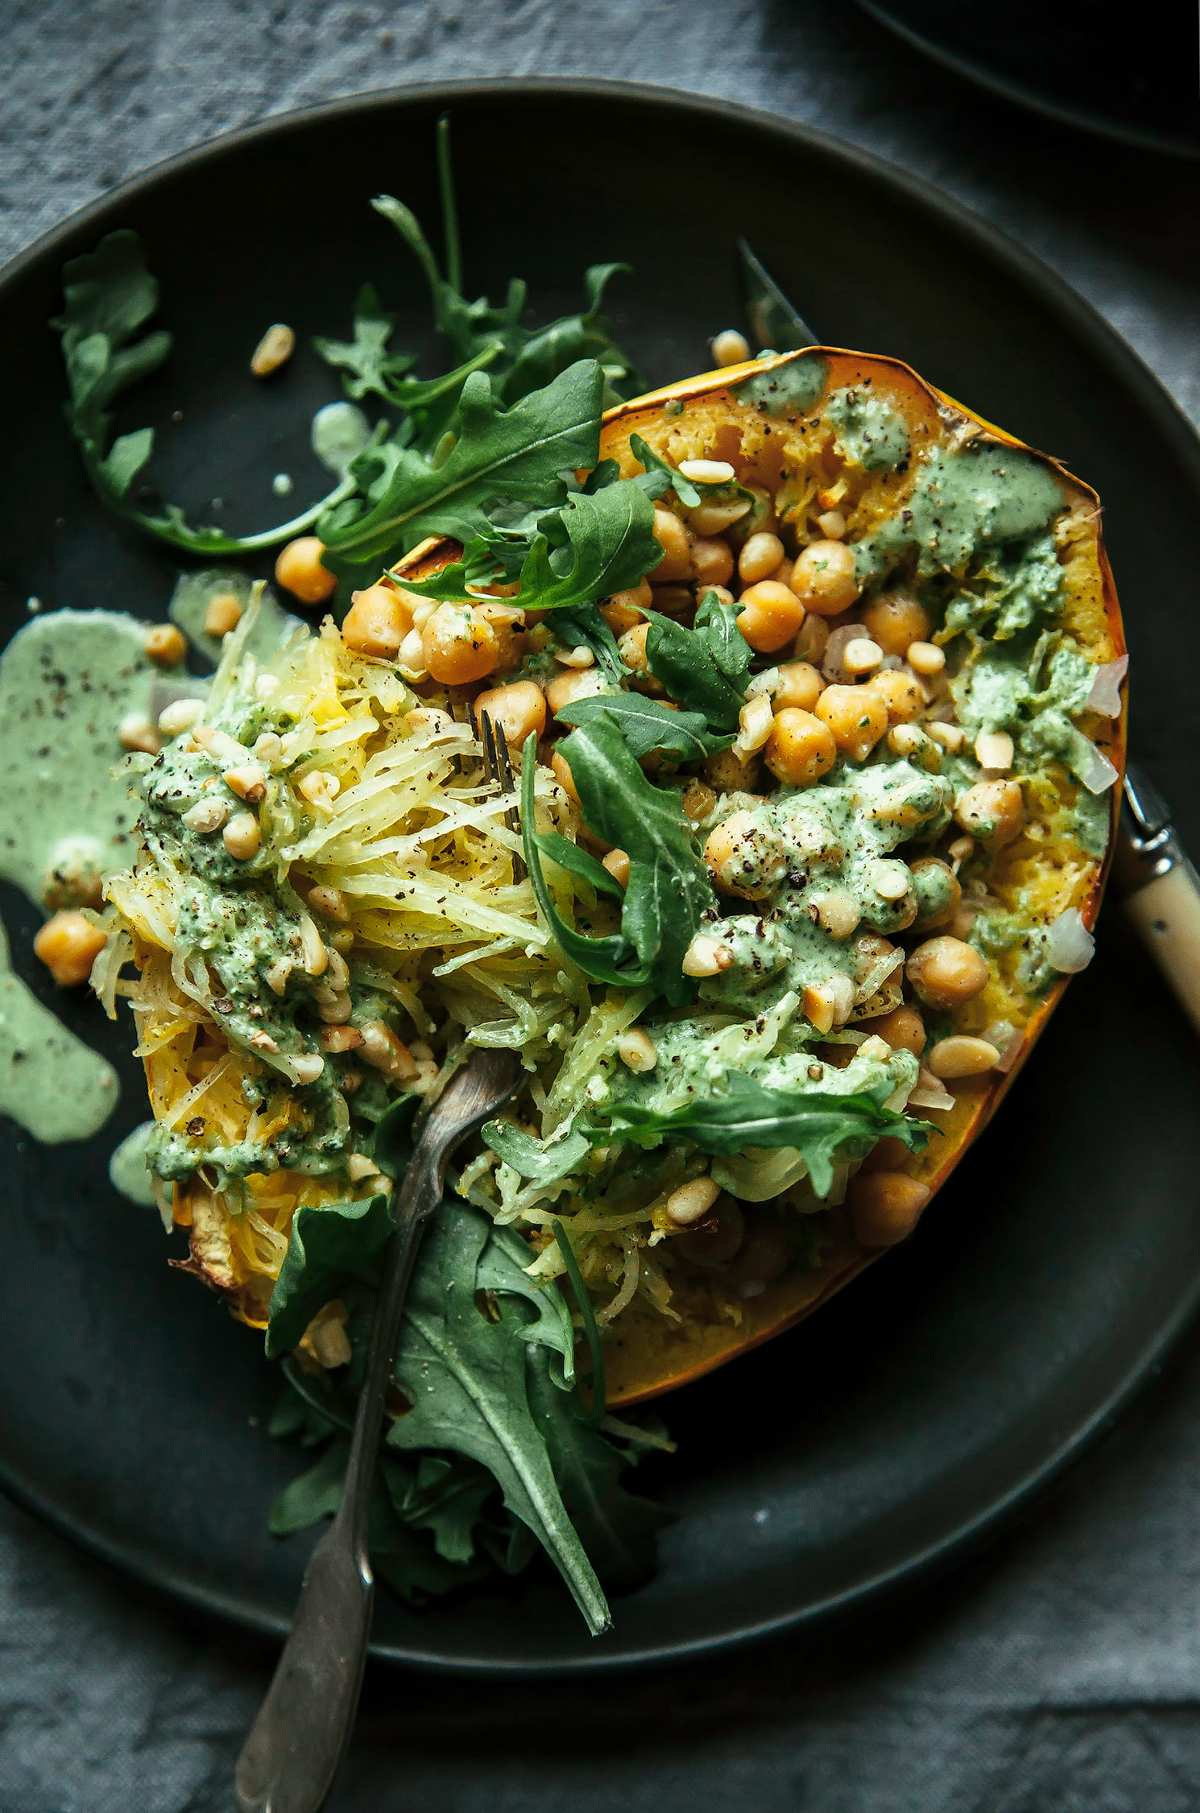 Stuffed Spaghetti Squash With Chickpeas Amp Garlicky Arugula Cream 187 The First Mess Plant Based